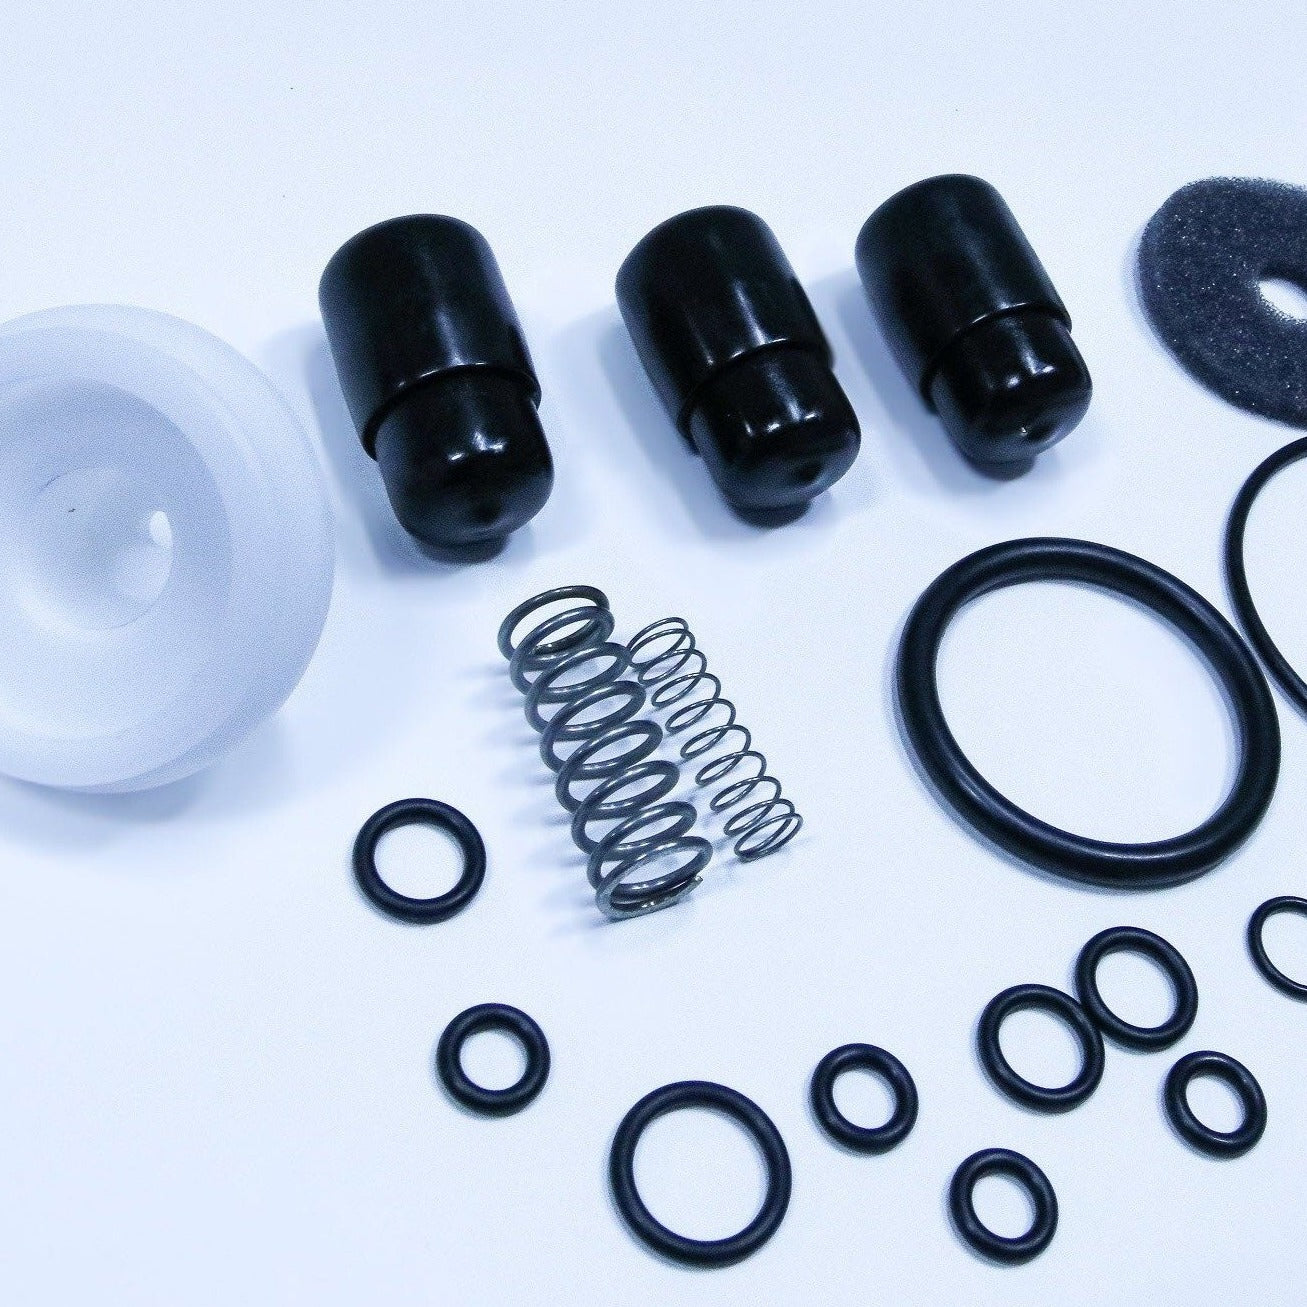 CH5-5406 CH5-5400 Overhaul Kit - Mathers Controls